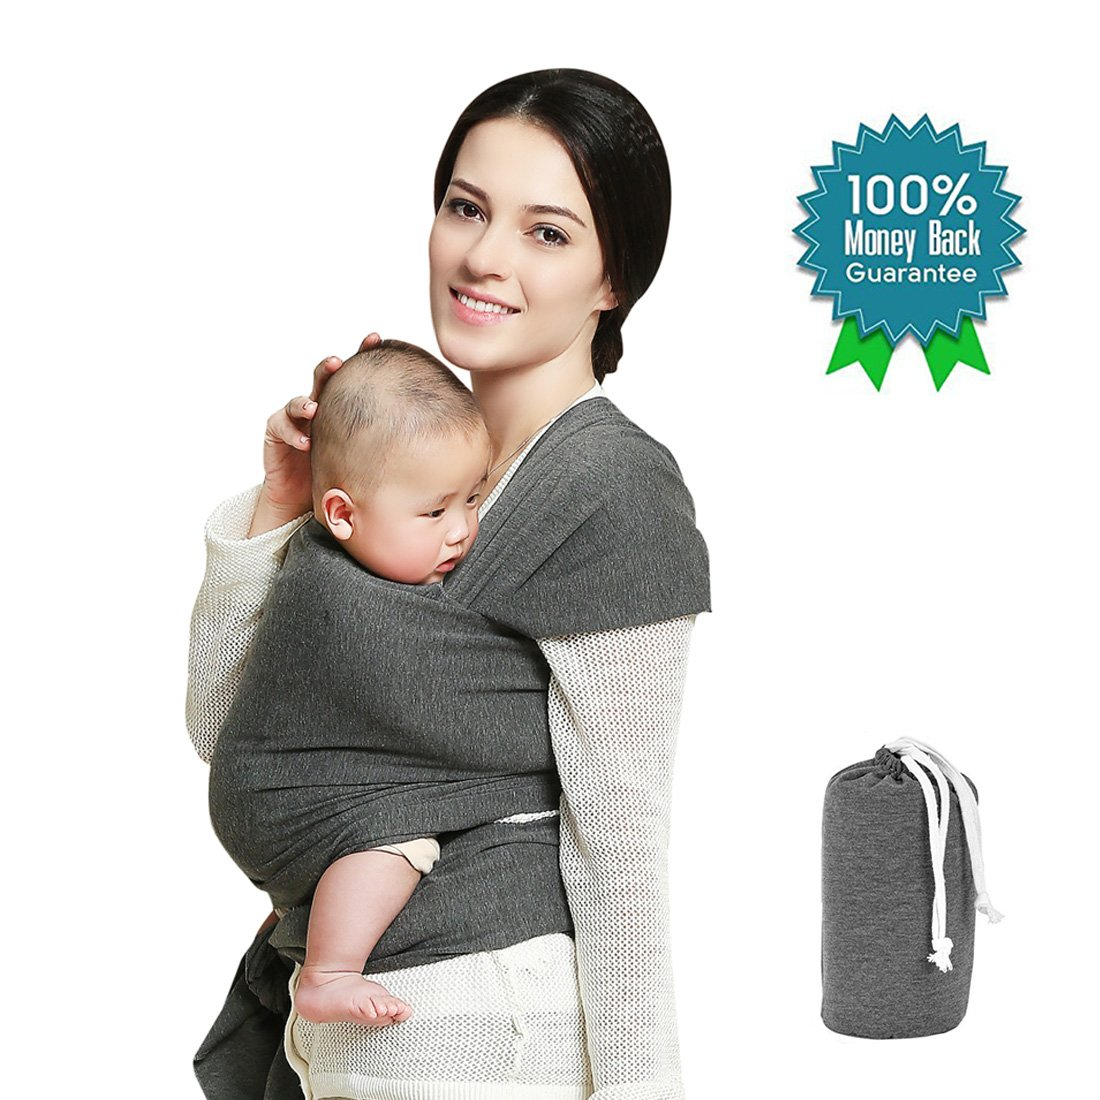 f1ebb4904bd Get Quotations · Baby Wrap Carrier up to 35lbs